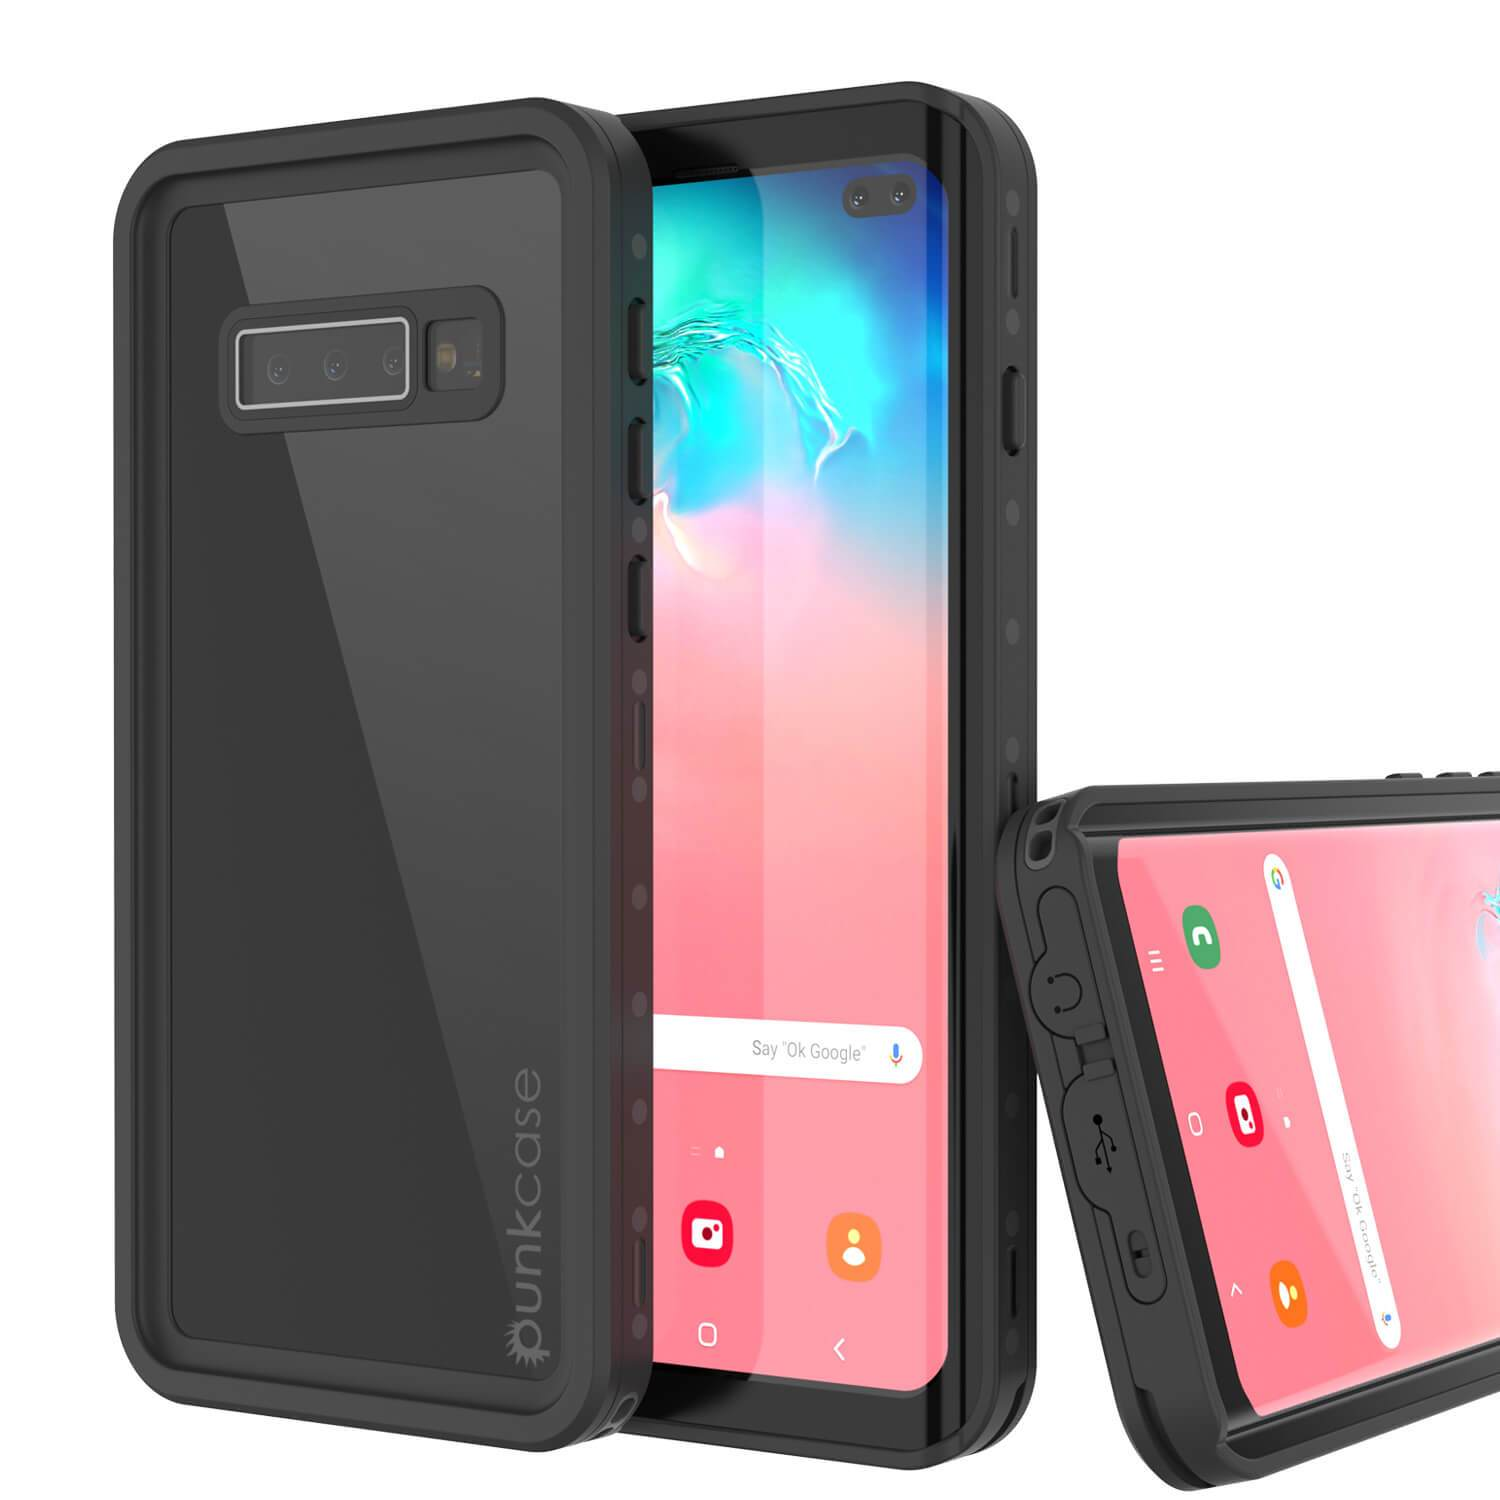 Galaxy S10+ Plus Waterproof Case PunkCase StudStar Black Thin 6.6ft Underwater IP68 Shock/Snow Proof